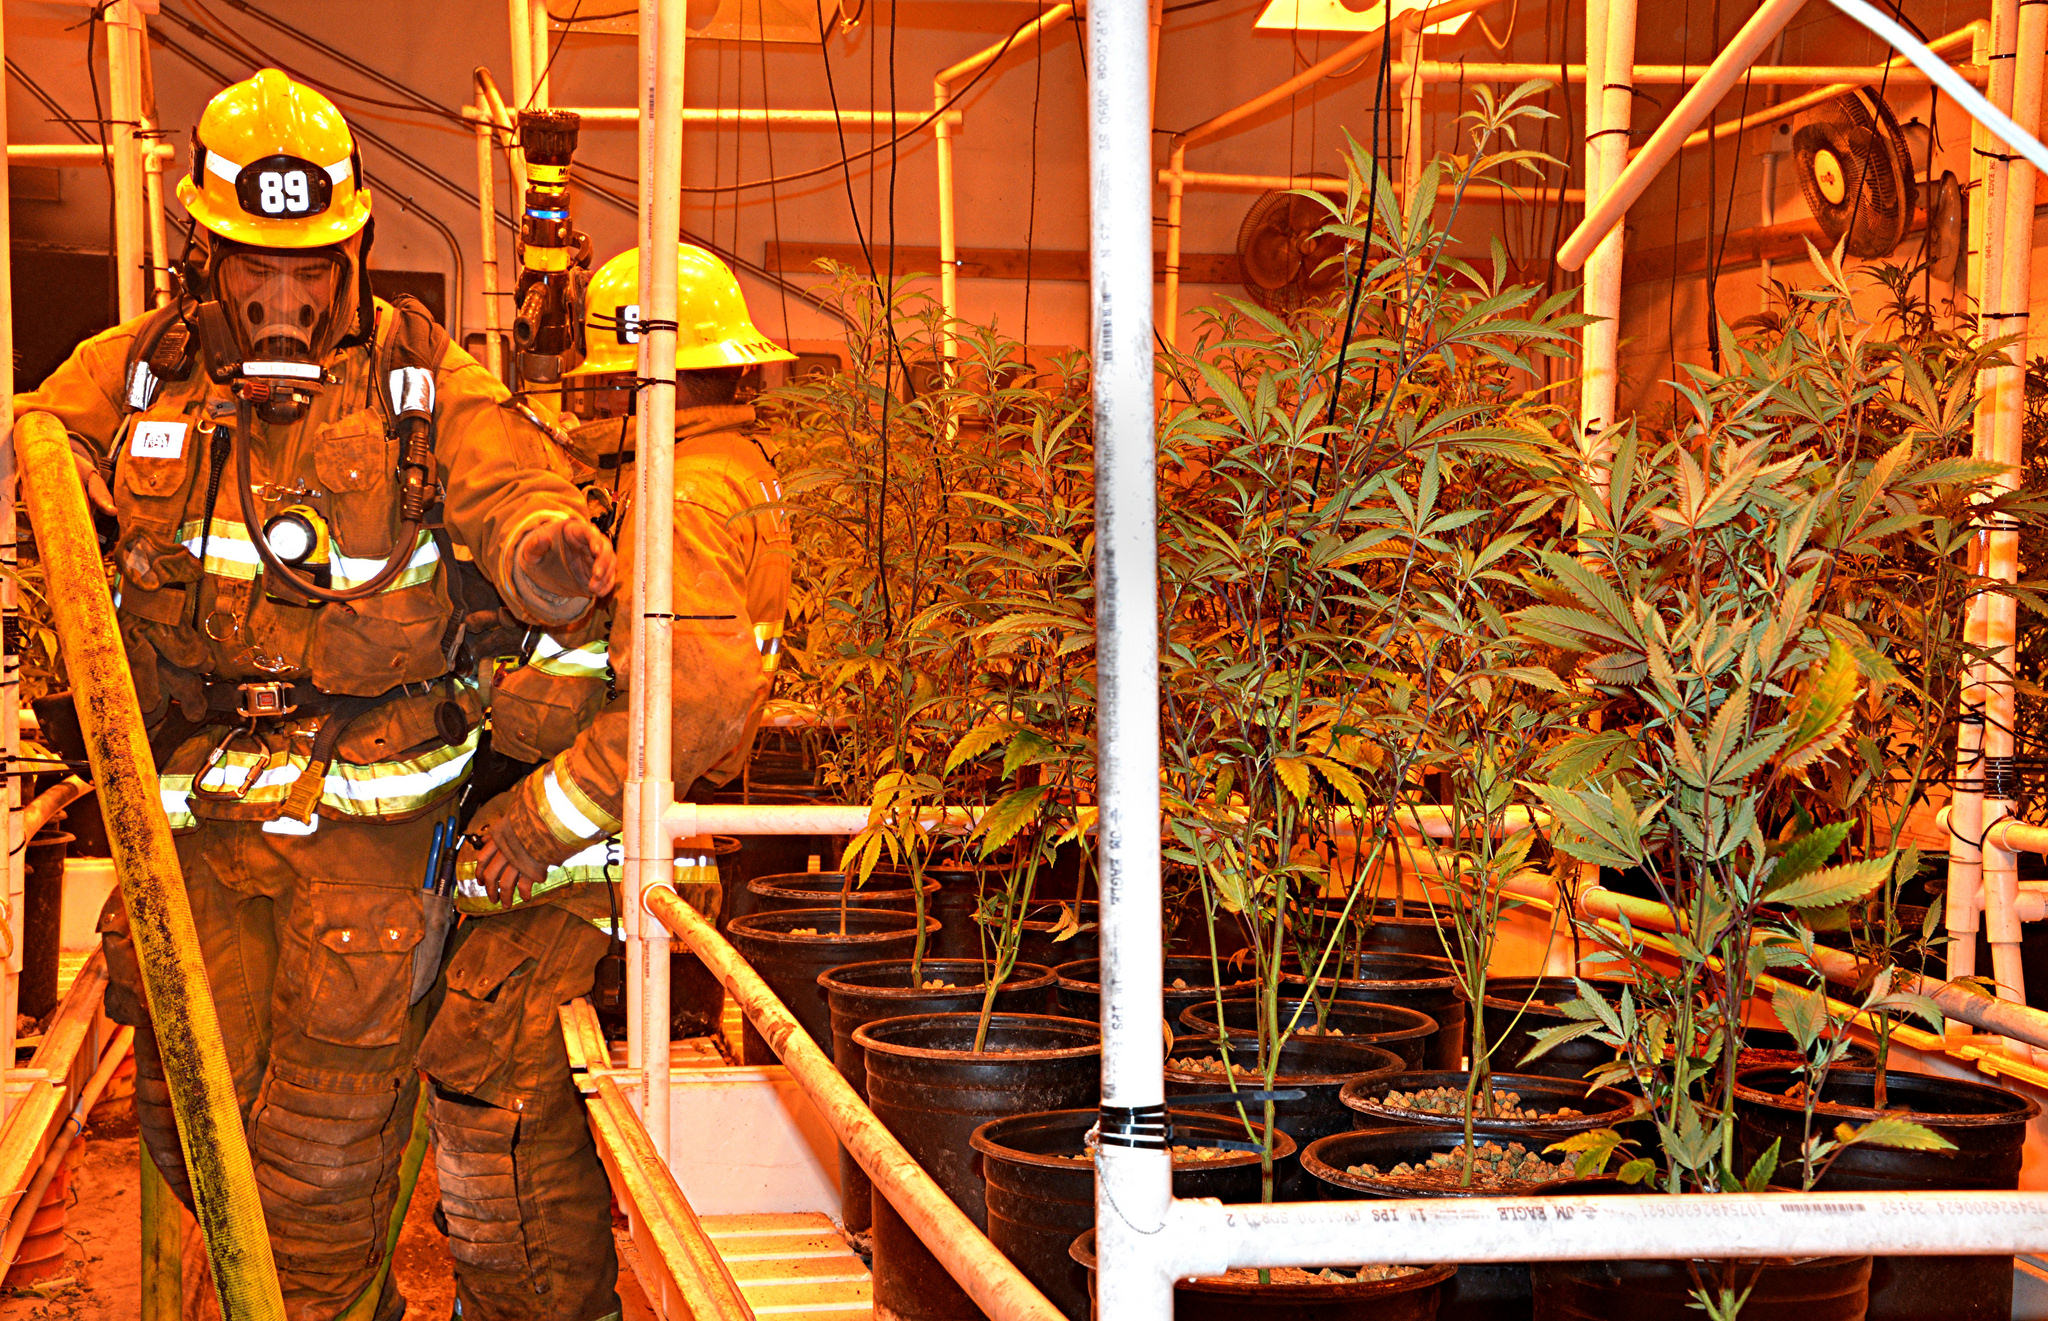 LAFD inspects grow operation